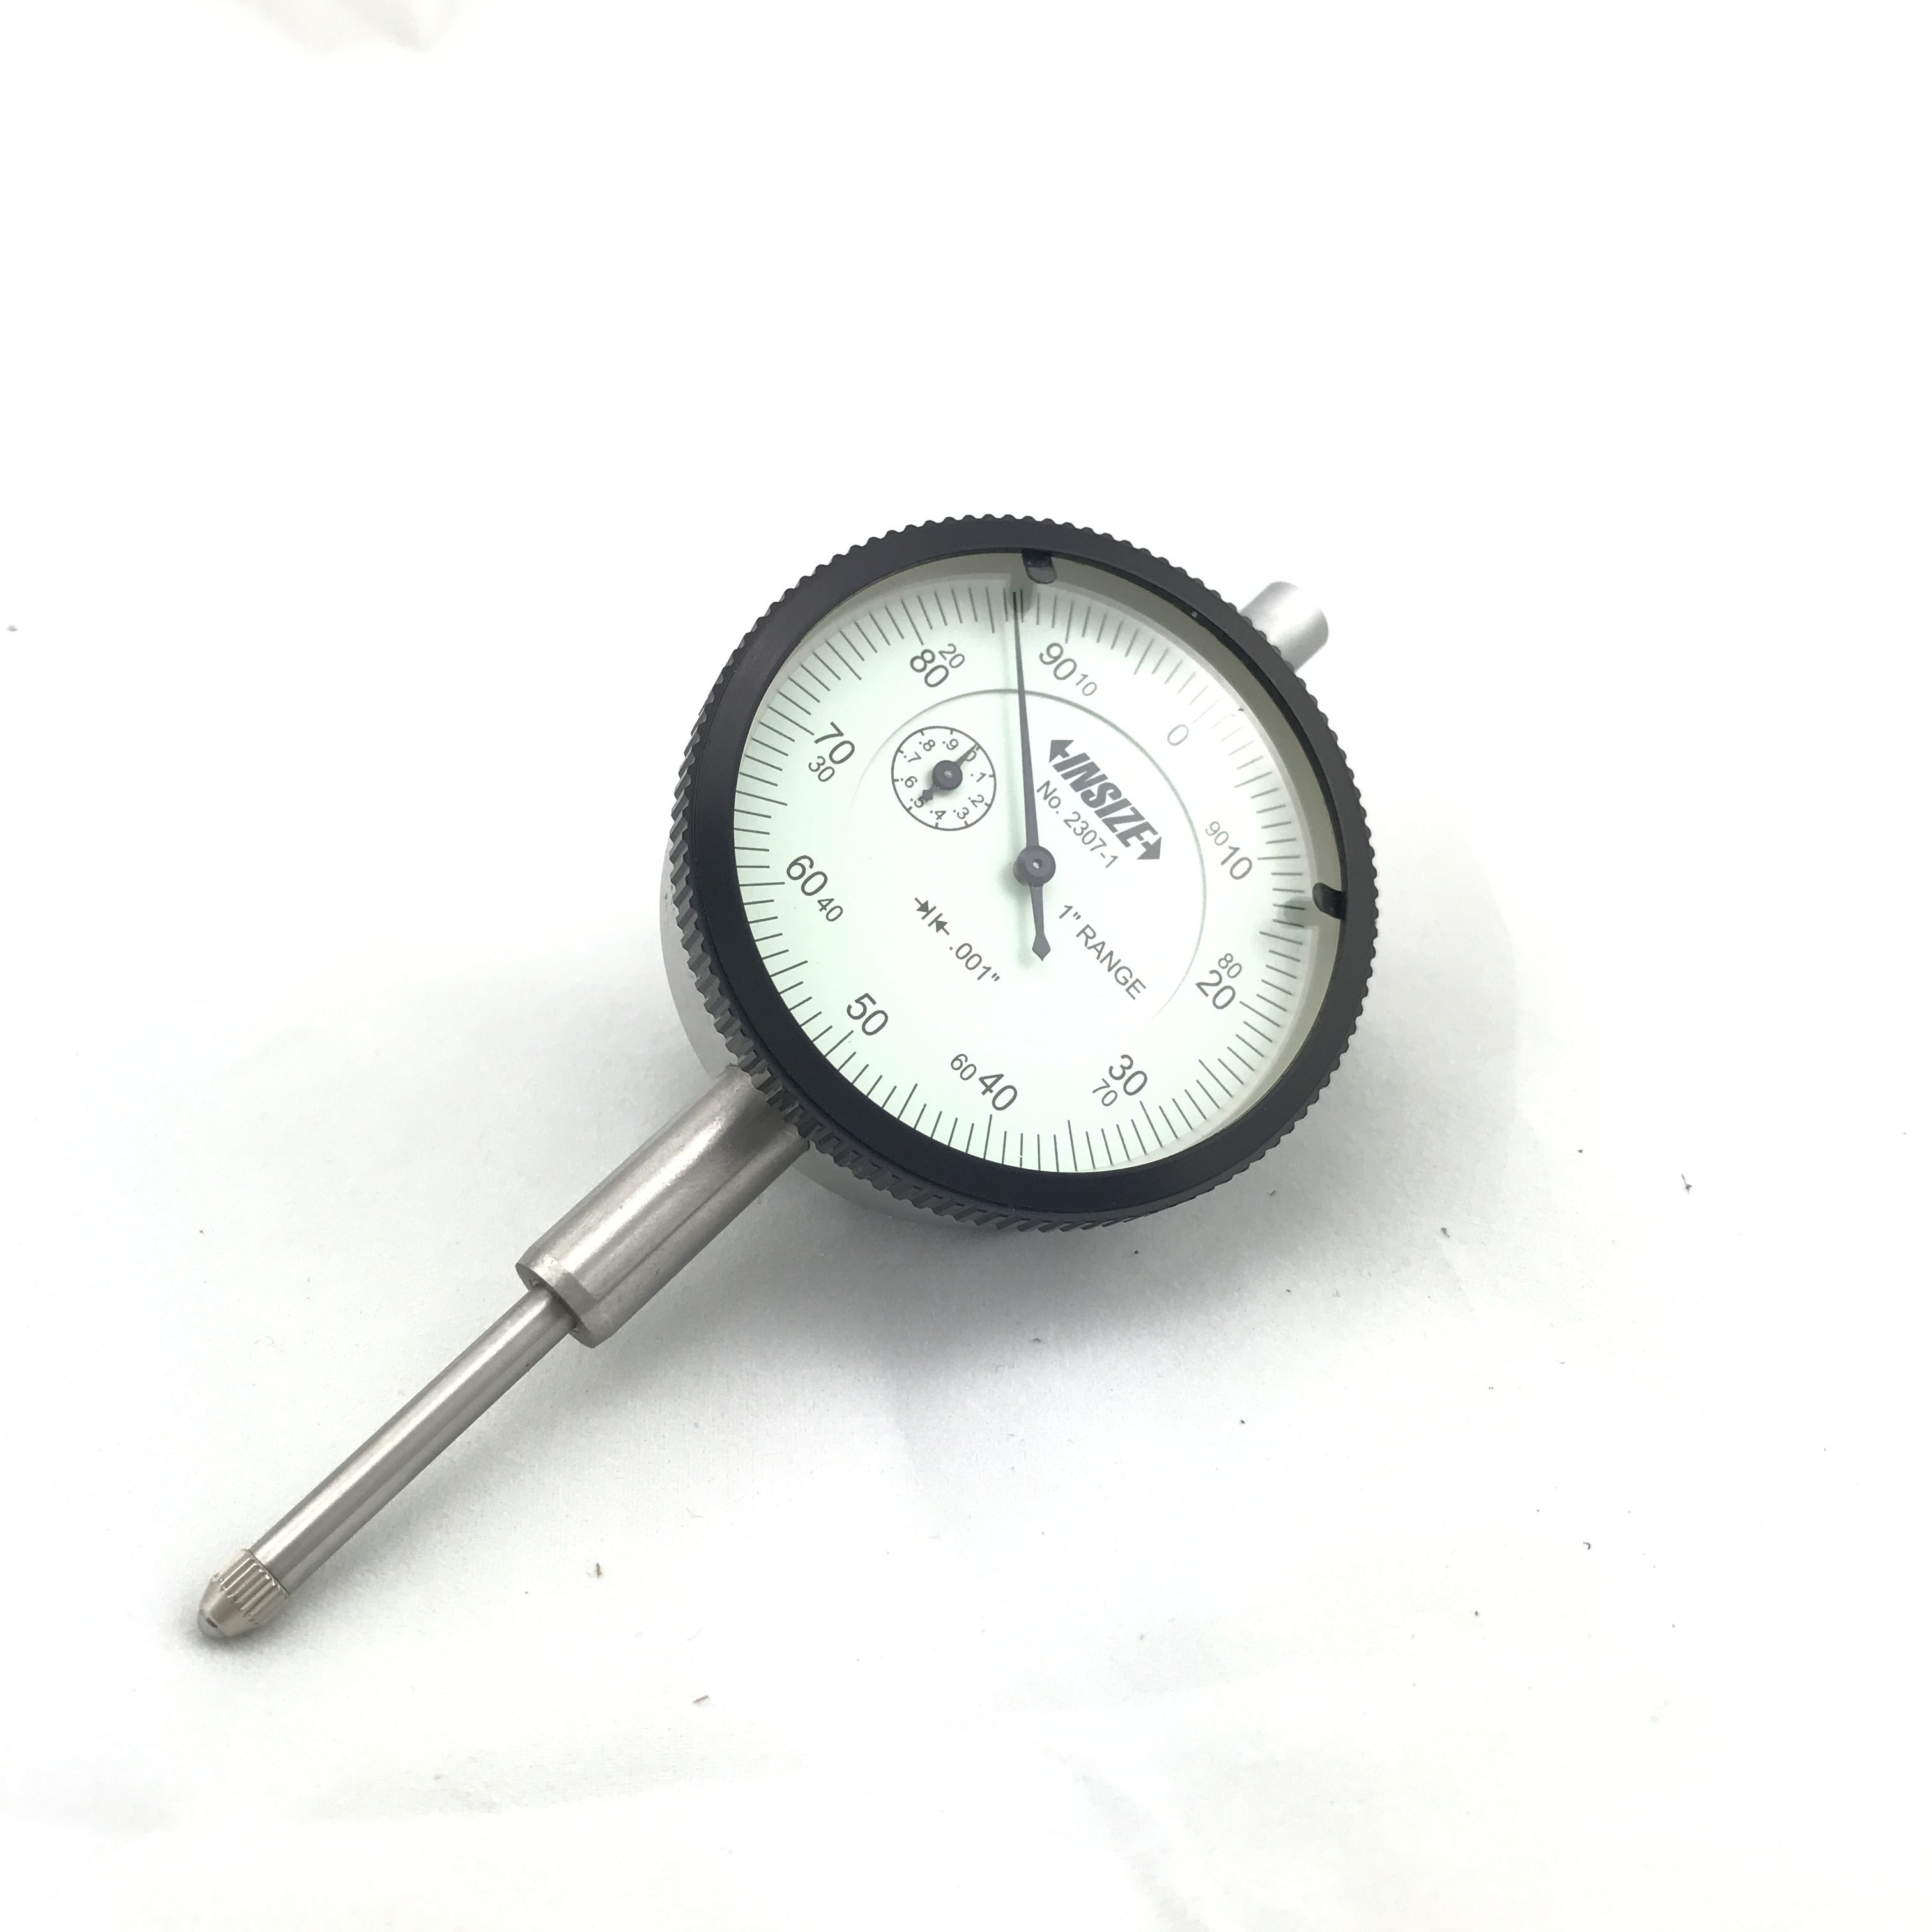 Imperial Insize Dial Indicator Series 2307  05.